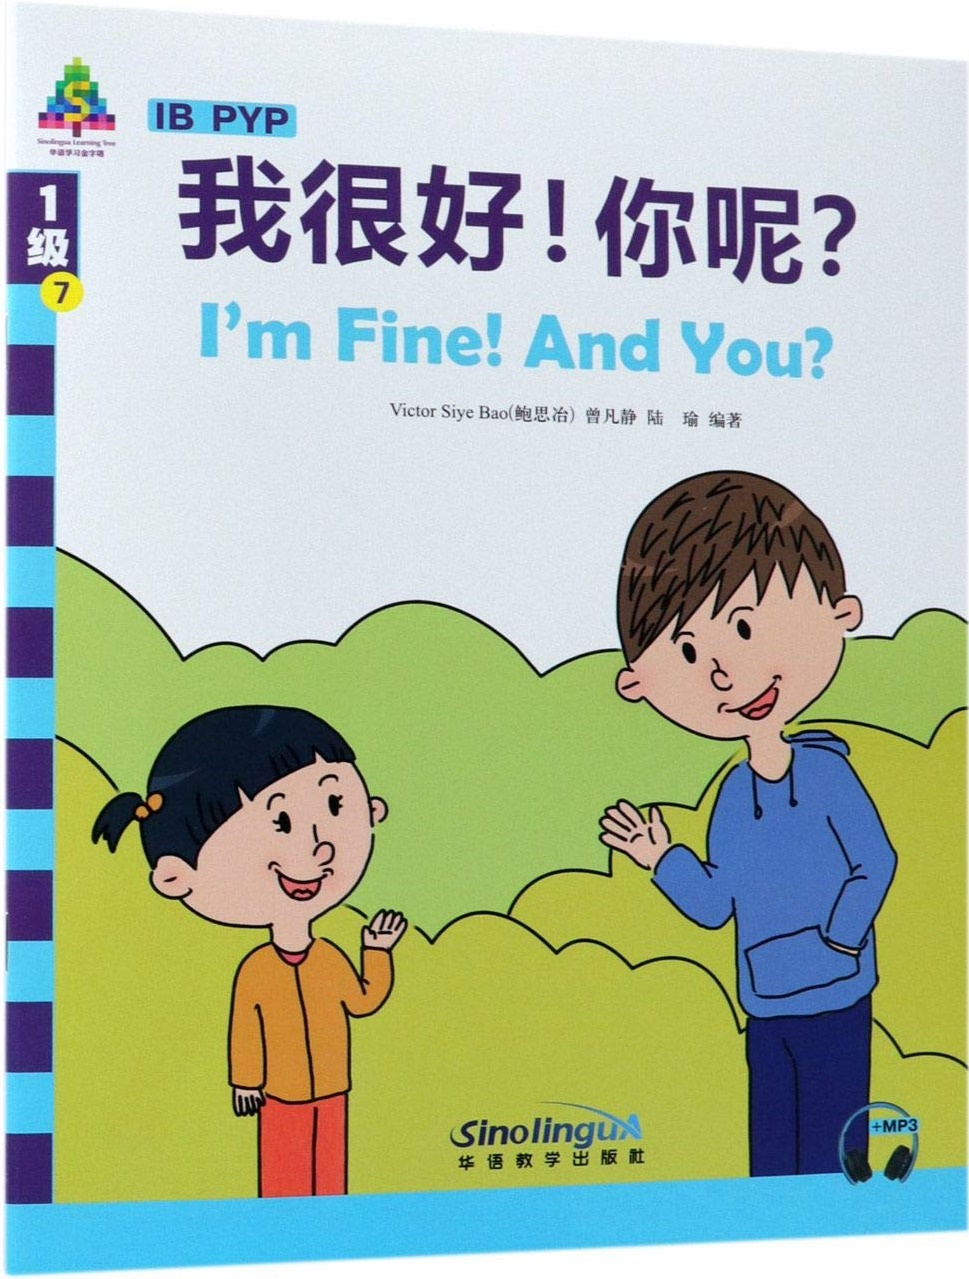 I'm Fine! And You?  - Sinolingua Reading Tree for IB PYP